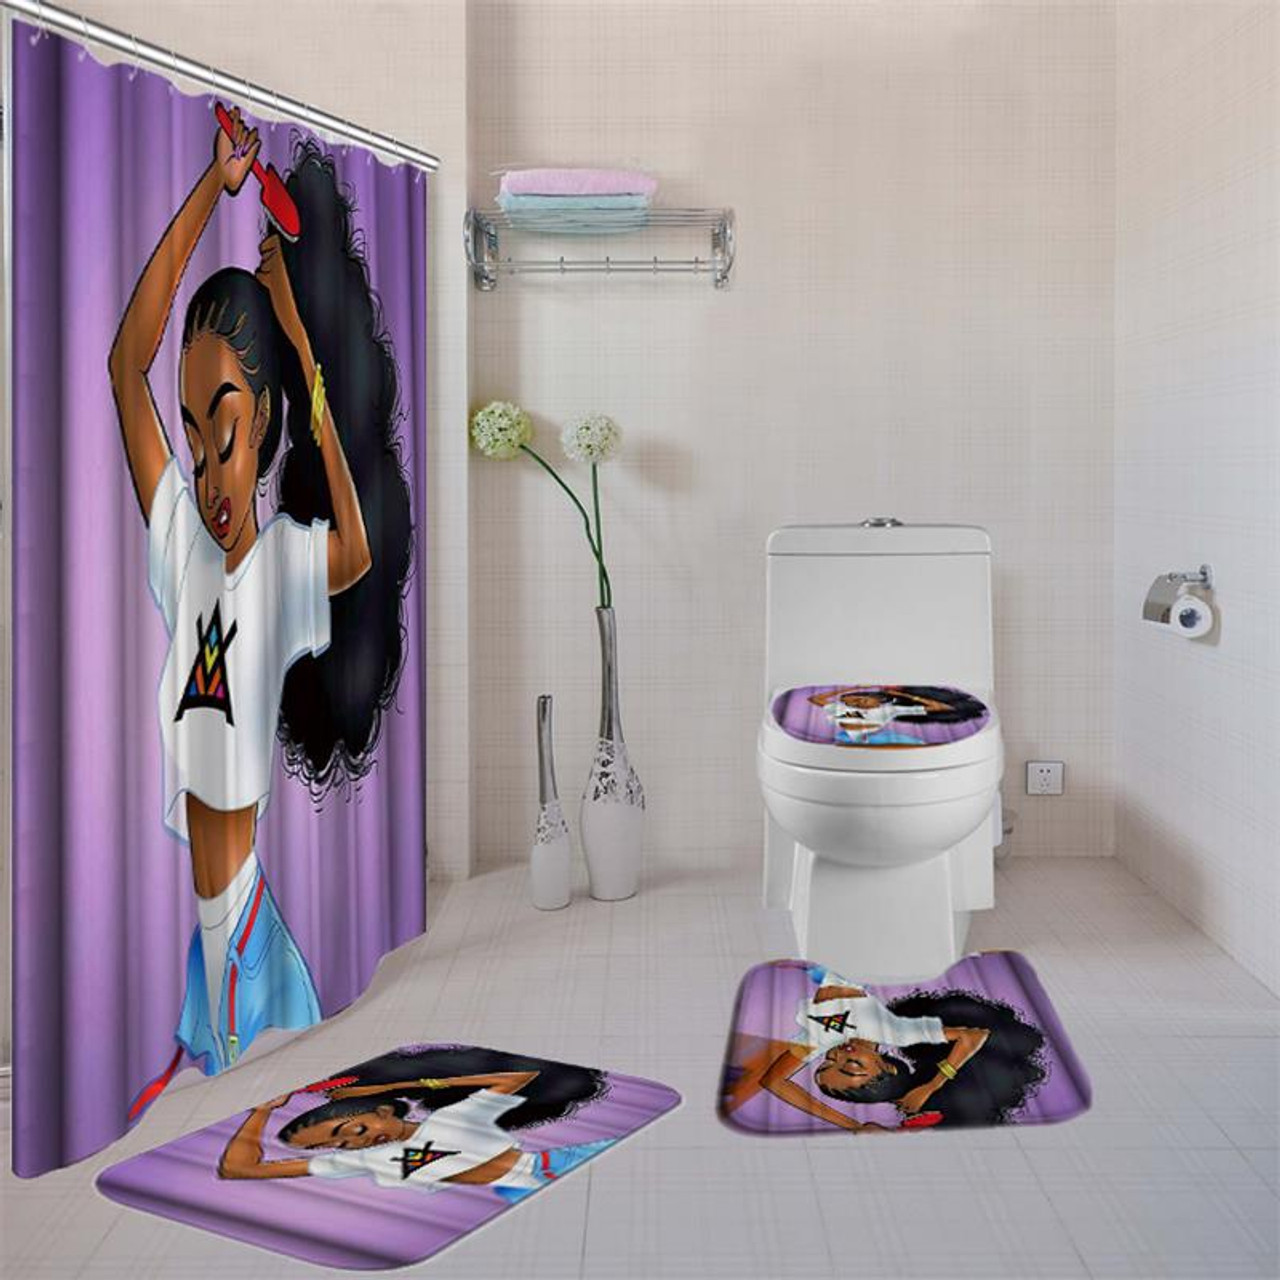 4 Pcs Bathroom Sets With Shower Curtain African American Girl Shower Curtain Bath Rug Sets Toilet Cover Bath Mat Set With Hooks Street Market Africa